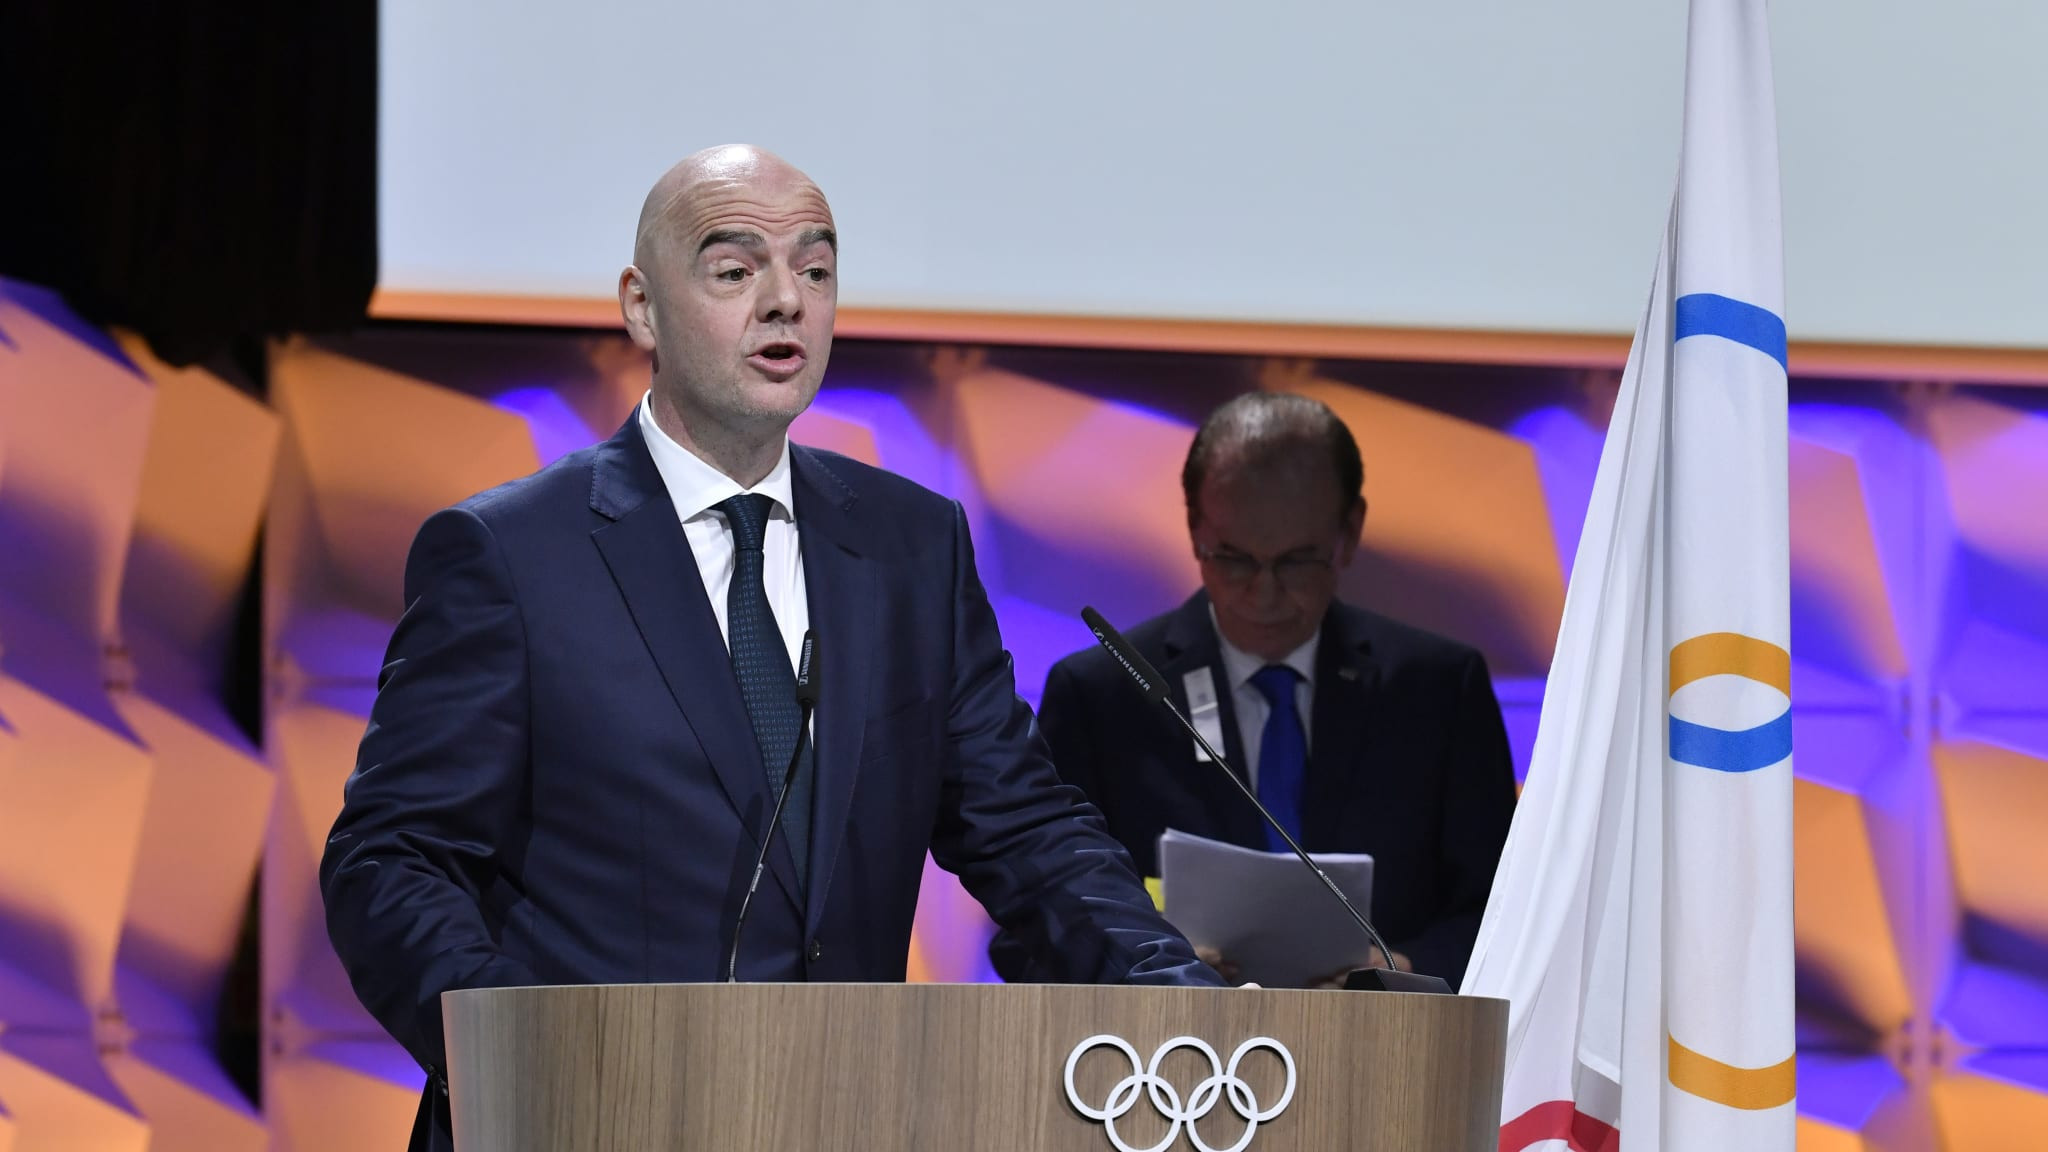 Gianni Infantino was elected as a member of the International Olympic Committee in January ©FIFA